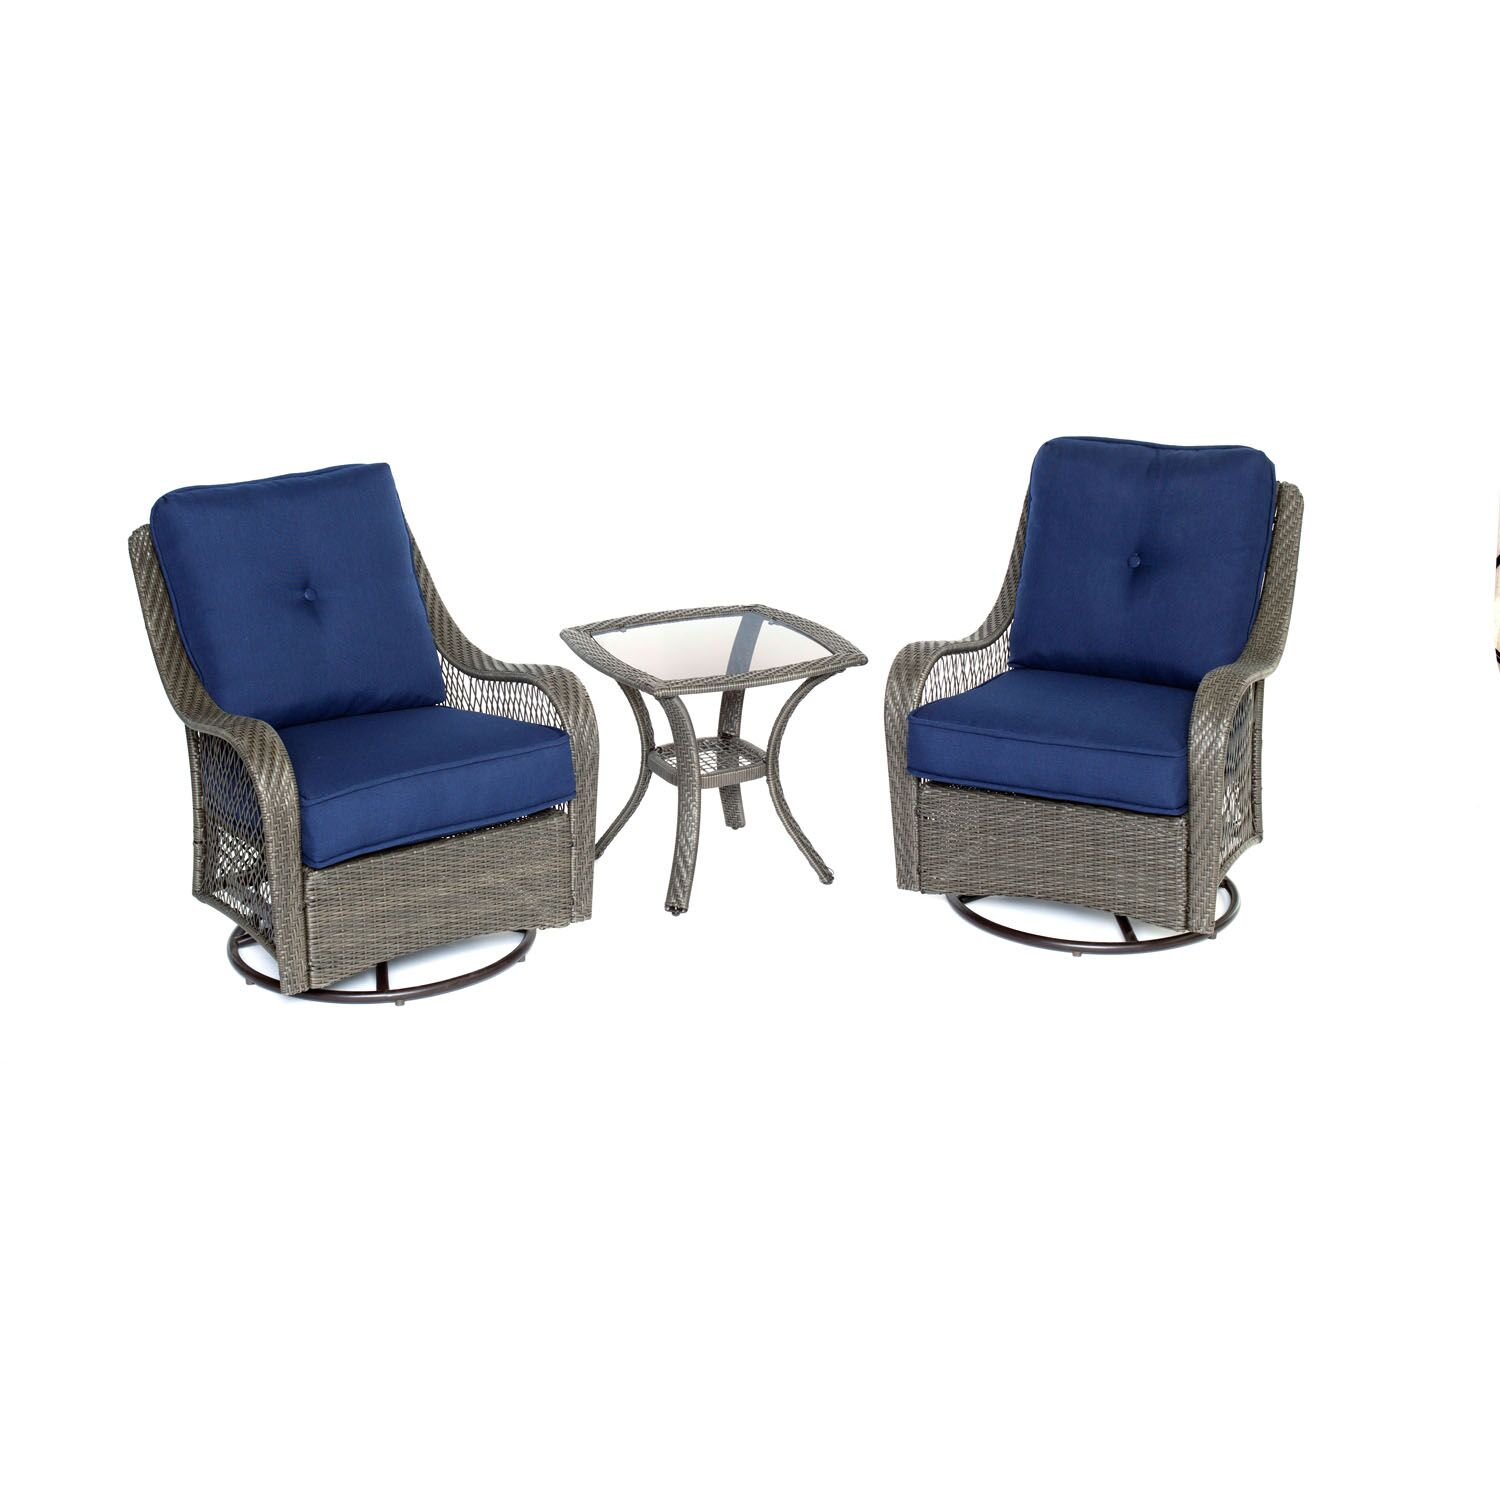 Innsbrook 3 Piece Conversation Set with Cushions Fabric: Silver Lining